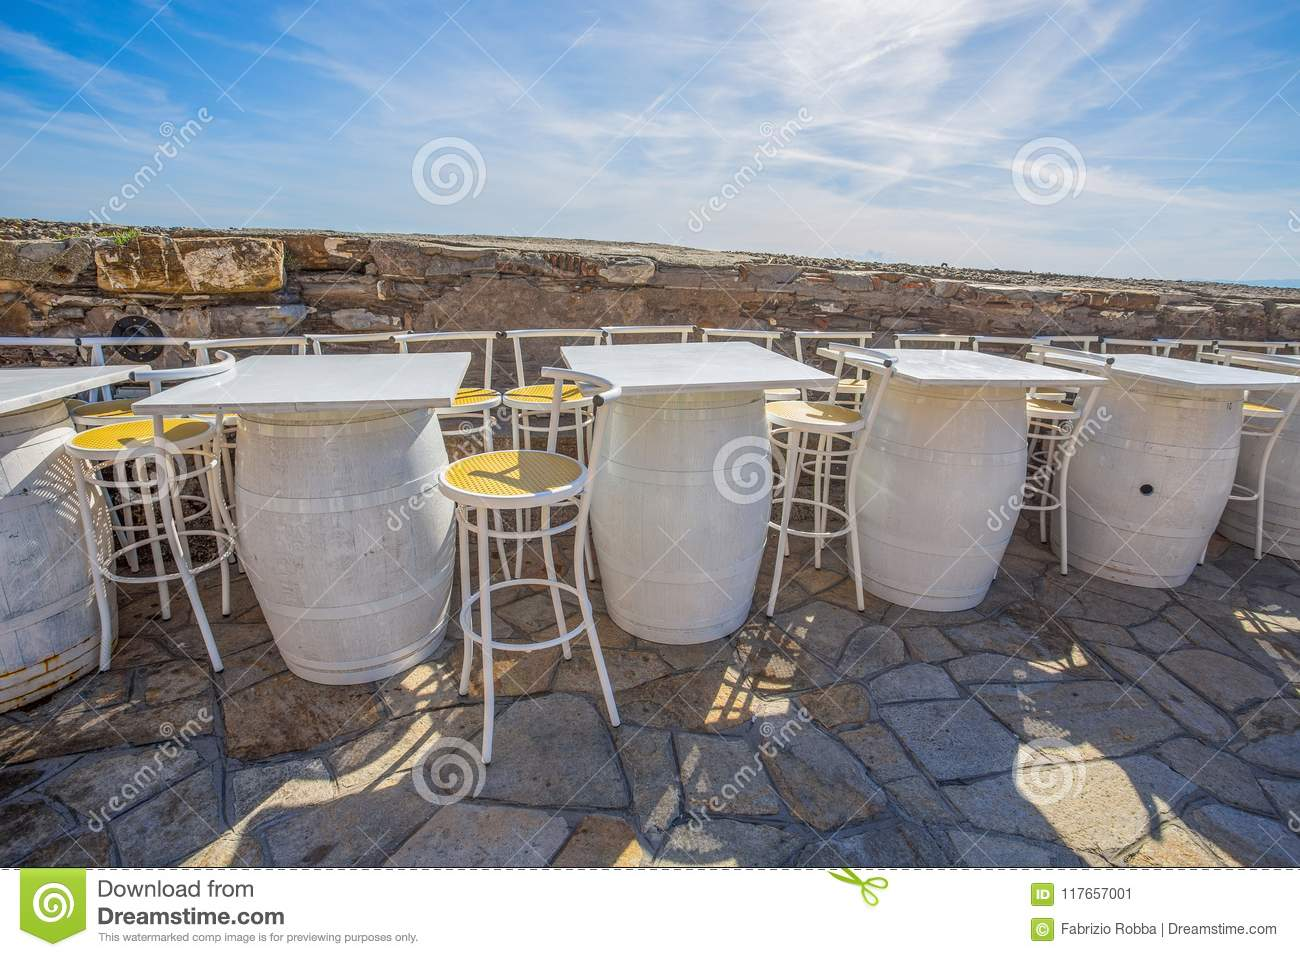 Chairs And White Tables Made Of Wine Barrels An Outdoor Restaurant